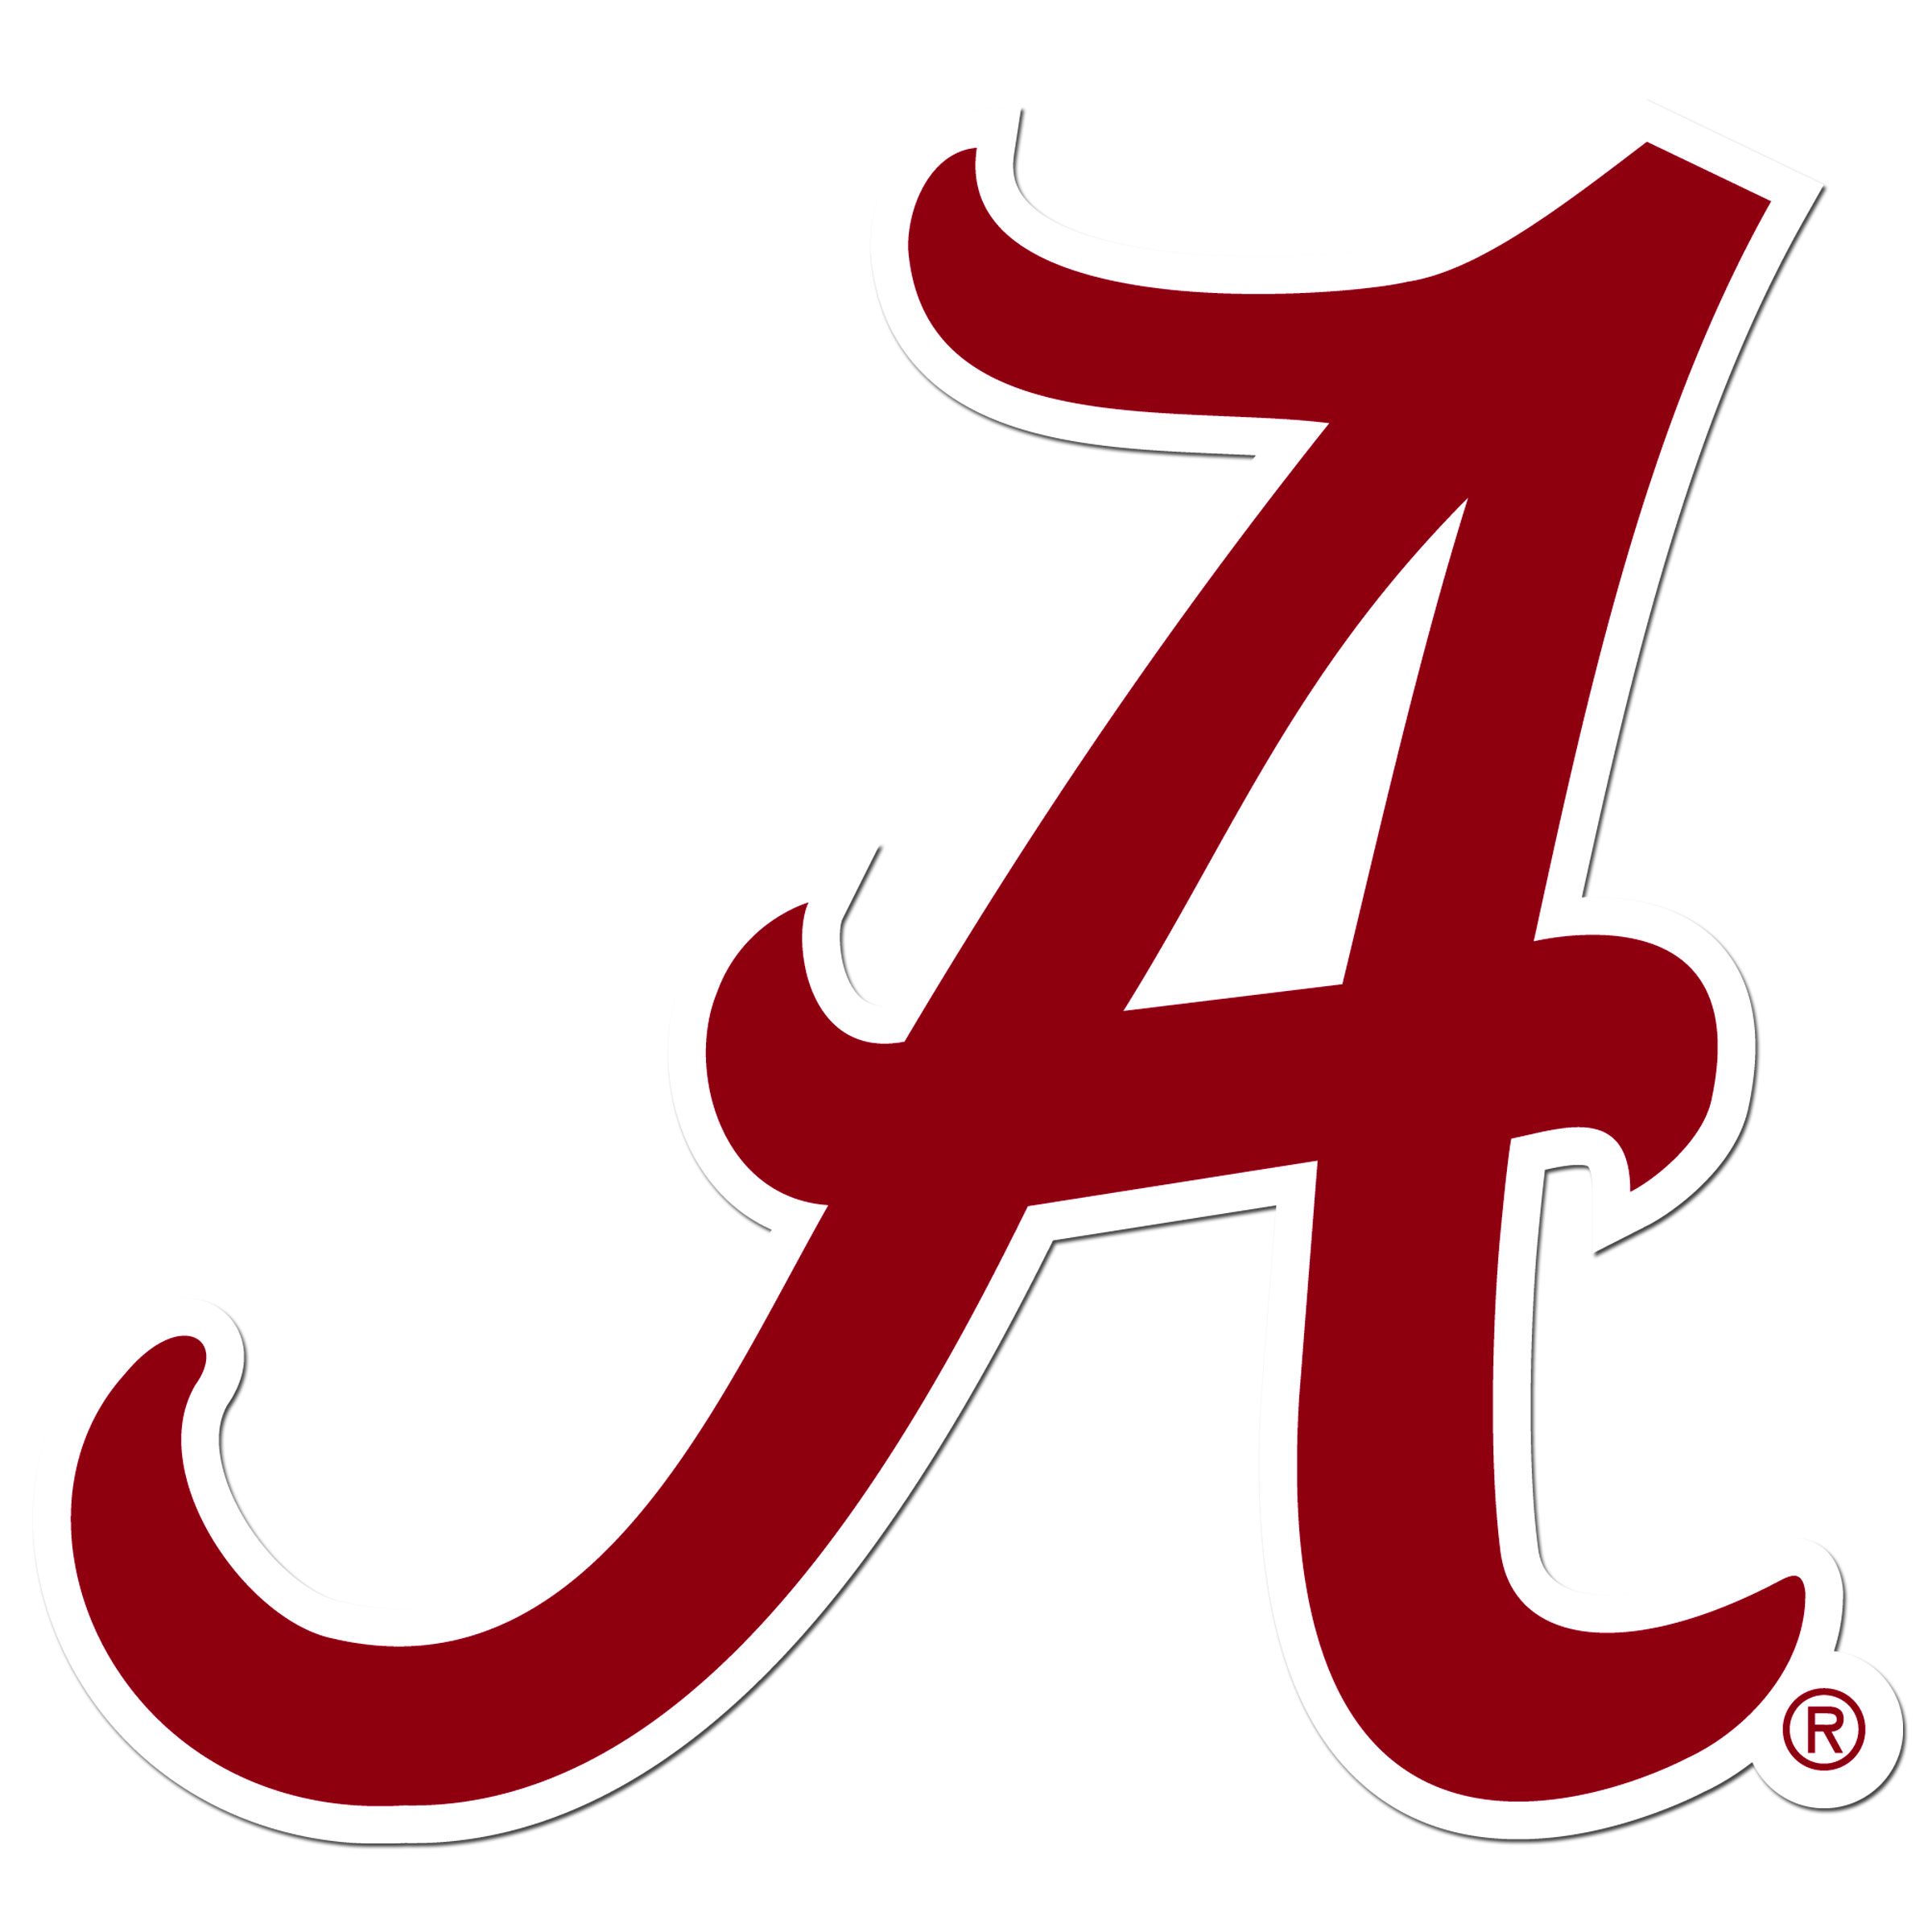 Alabama Crimson Tide 8 inch Auto Decal - This bold, 8 inch Alabama Crimson Tide is a great way to show off your team pride! The low tack vinyl decal is easily positioned and adjusted to make sure you get that logo in just the right spot on your vehicle. Designed to be used on the outside of the window.